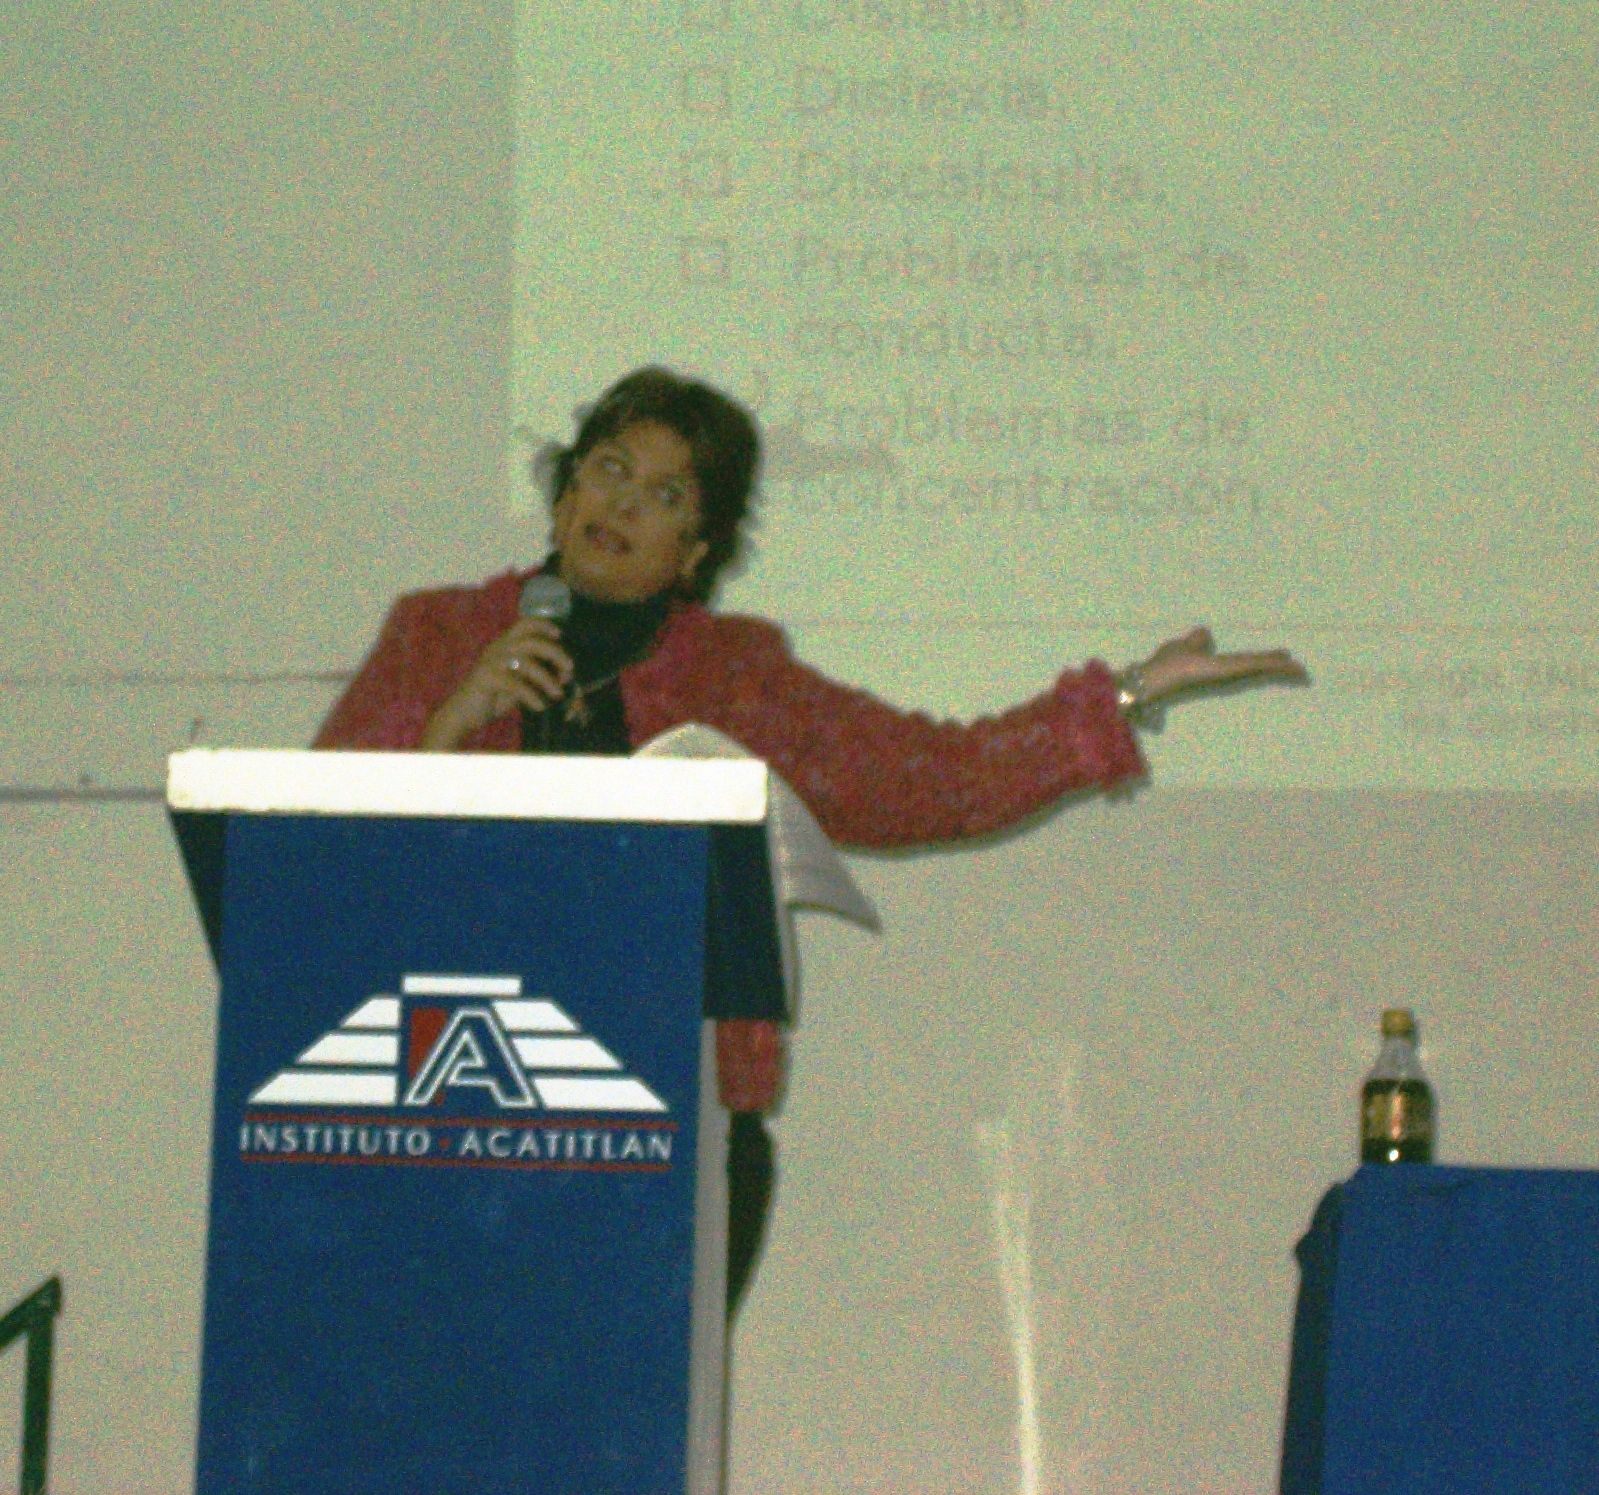 Conferencia El Tdah Una Discapacidad Invisible